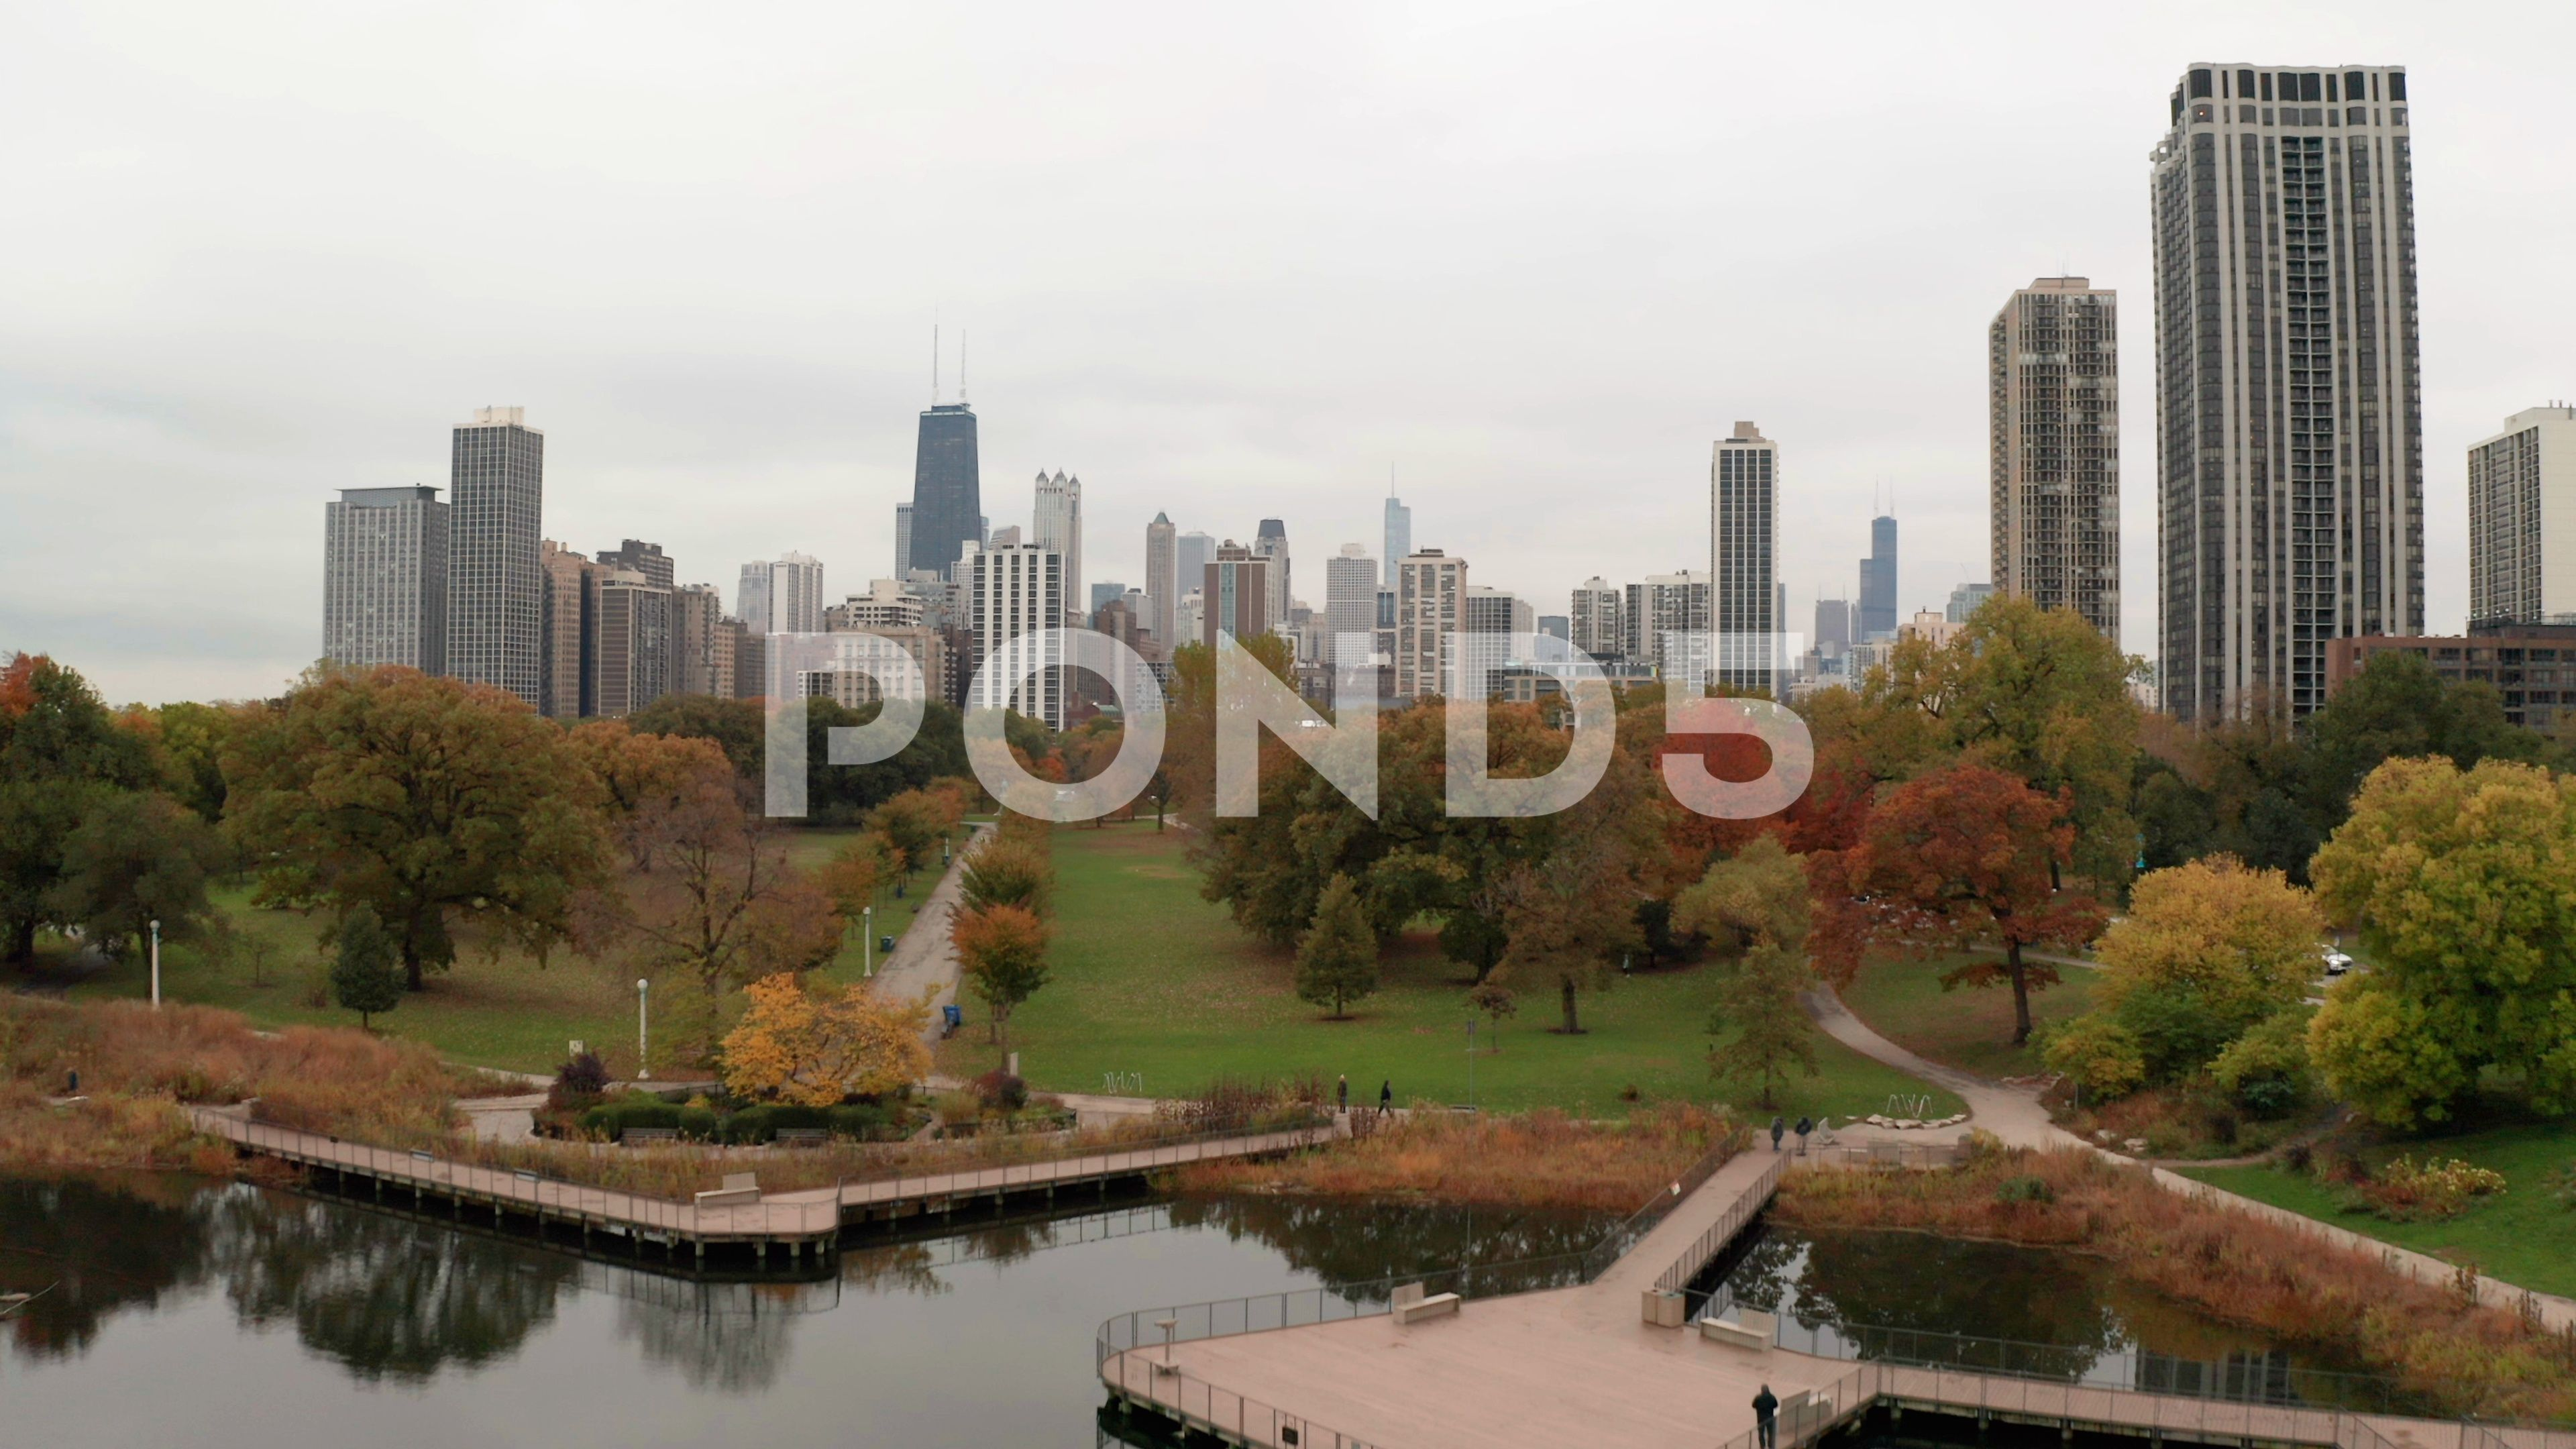 Chicago Downtown Aerial Fall Autumn Foliage Buildings Drone Flying Skyline Stock Footage Ad Fall Autumn Foliage Chicago In 2020 Fall Foliage Downtown Chicago Aerial